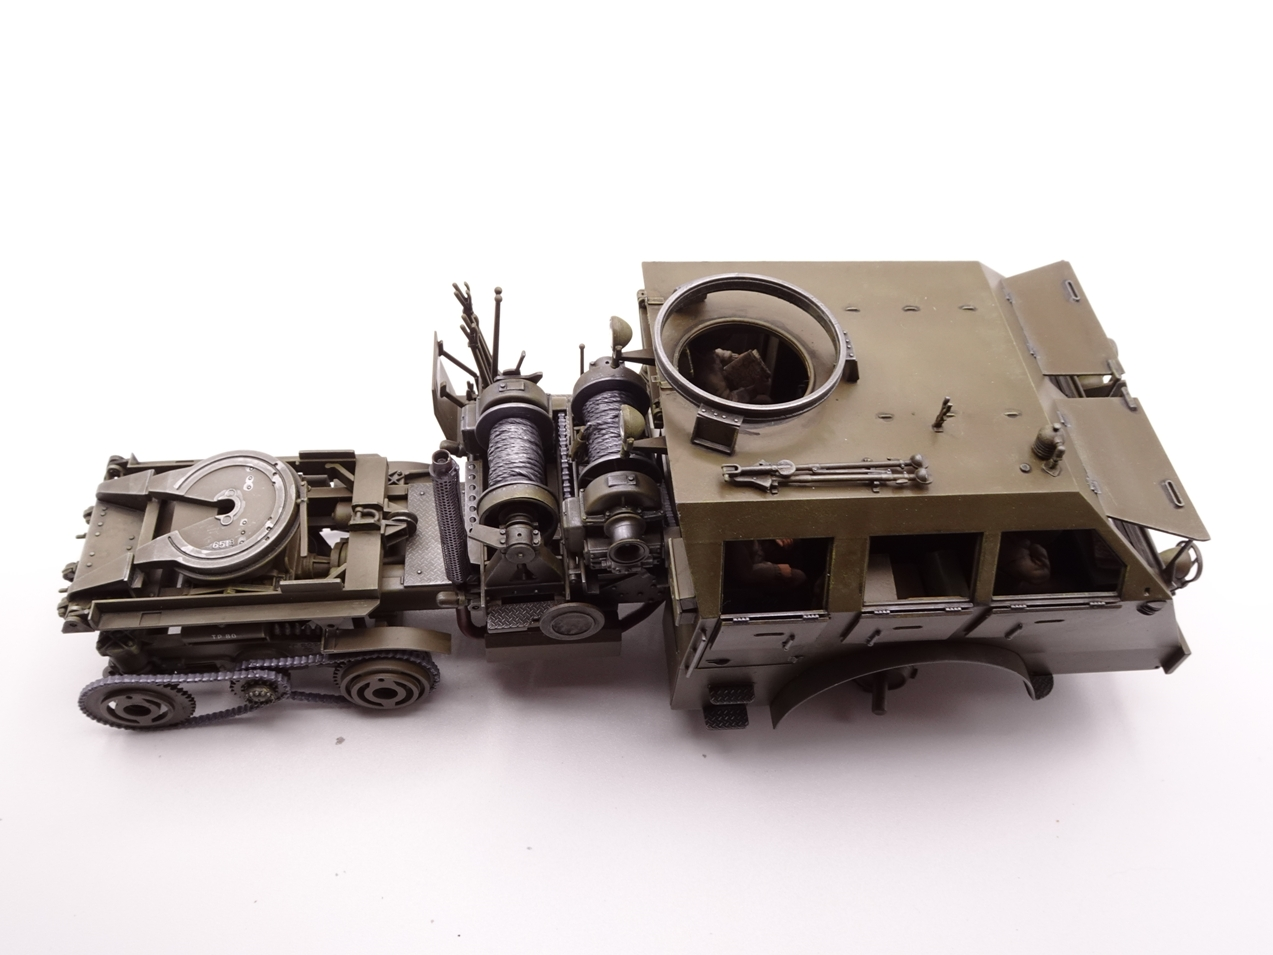 [Tamiya 1/35] M26 Armored tank recovery vehicle réf. 35244 - Page 4 M26-1810-7